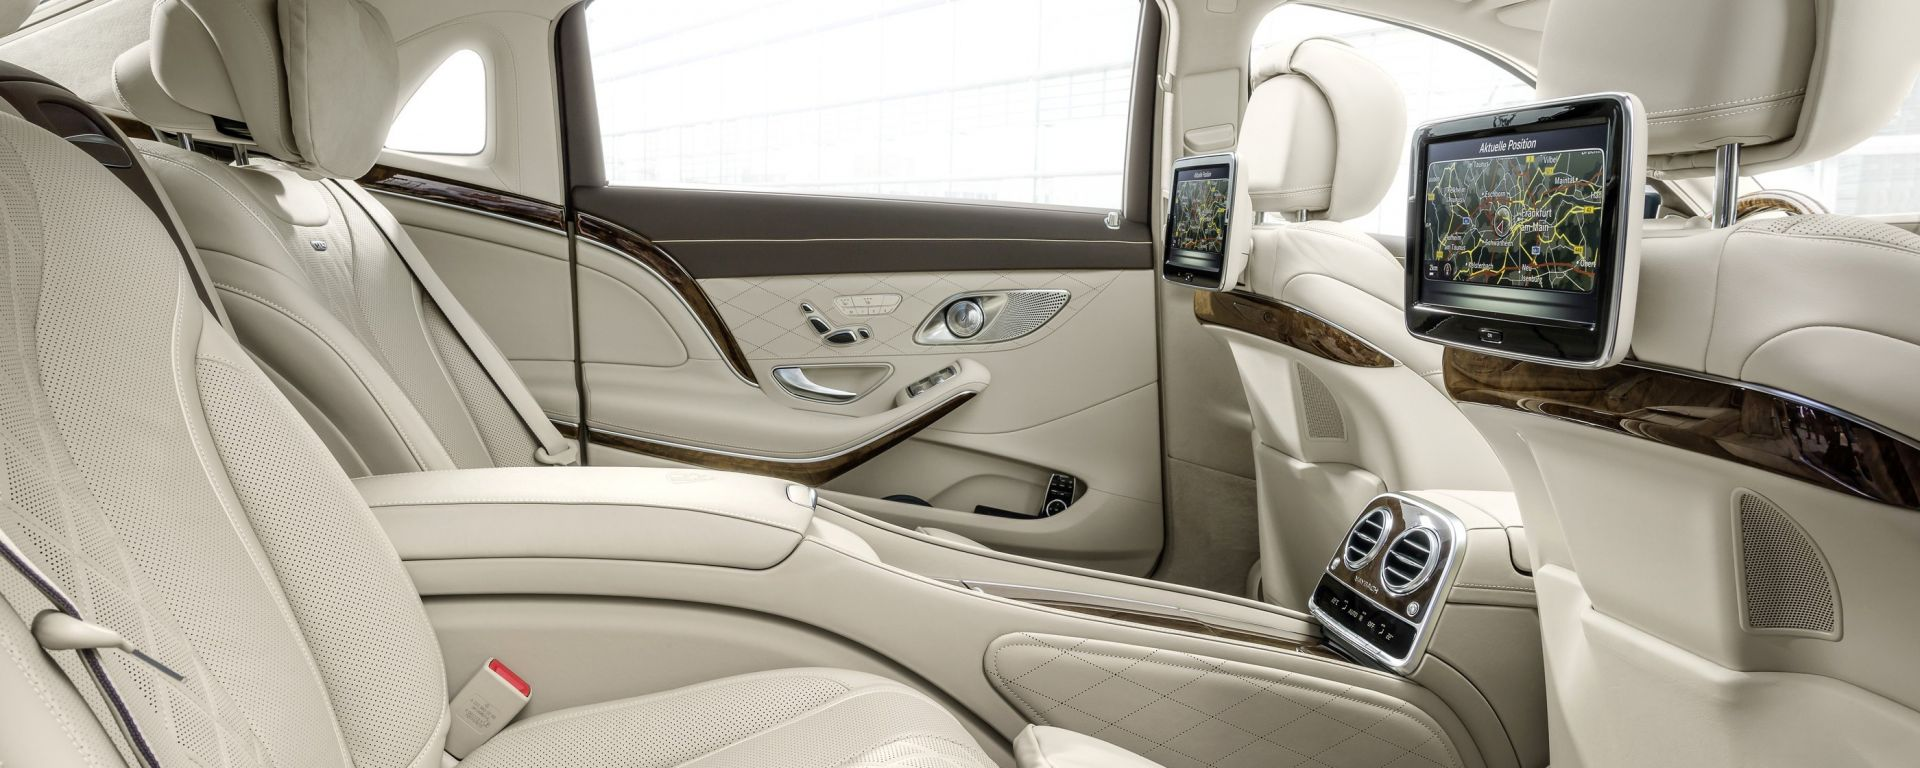 novit auto mercedes maybach classe s motorbox. Black Bedroom Furniture Sets. Home Design Ideas